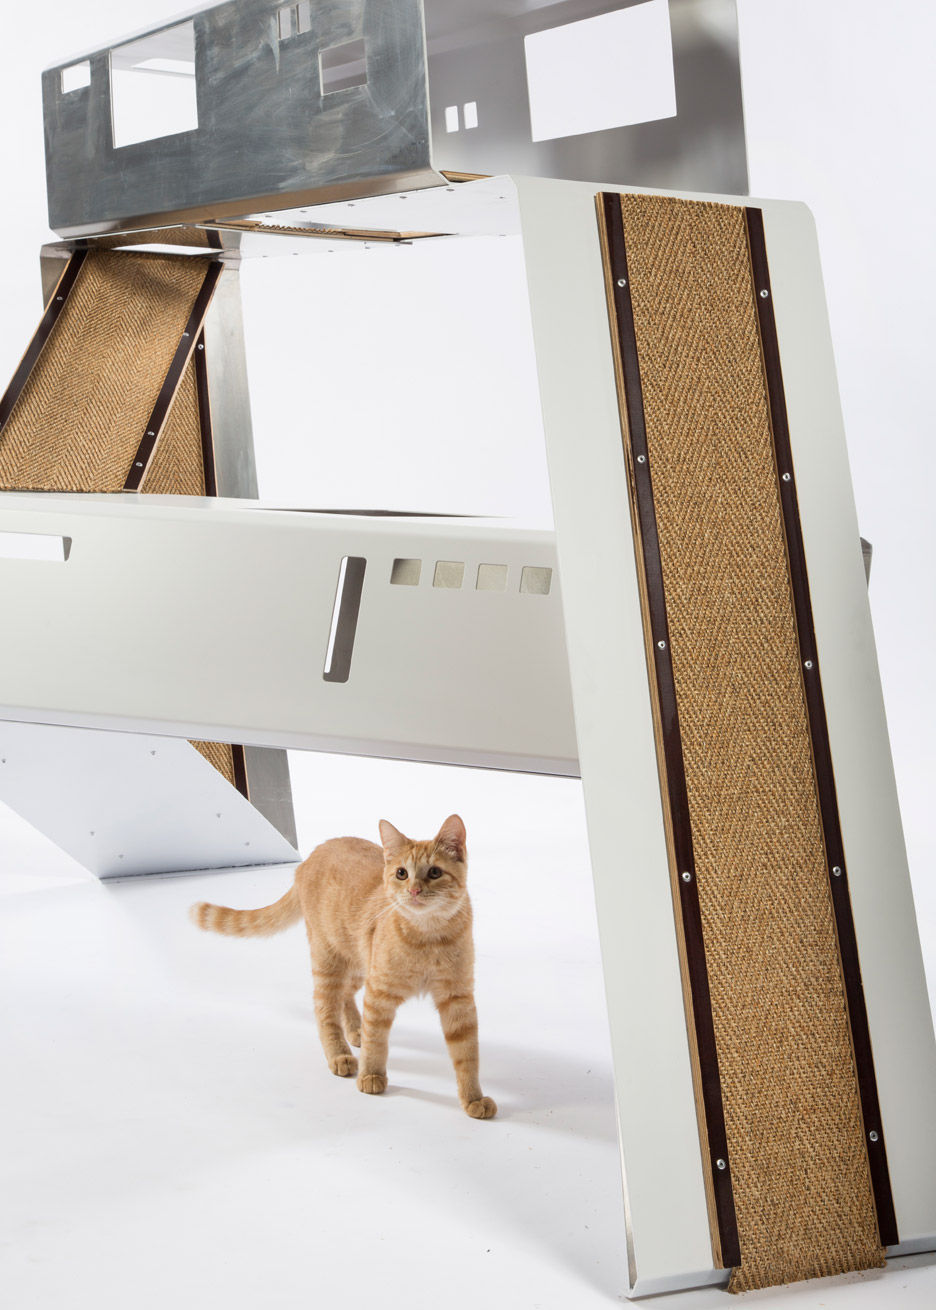 10-WORD-schmidt designs-cat-shelter